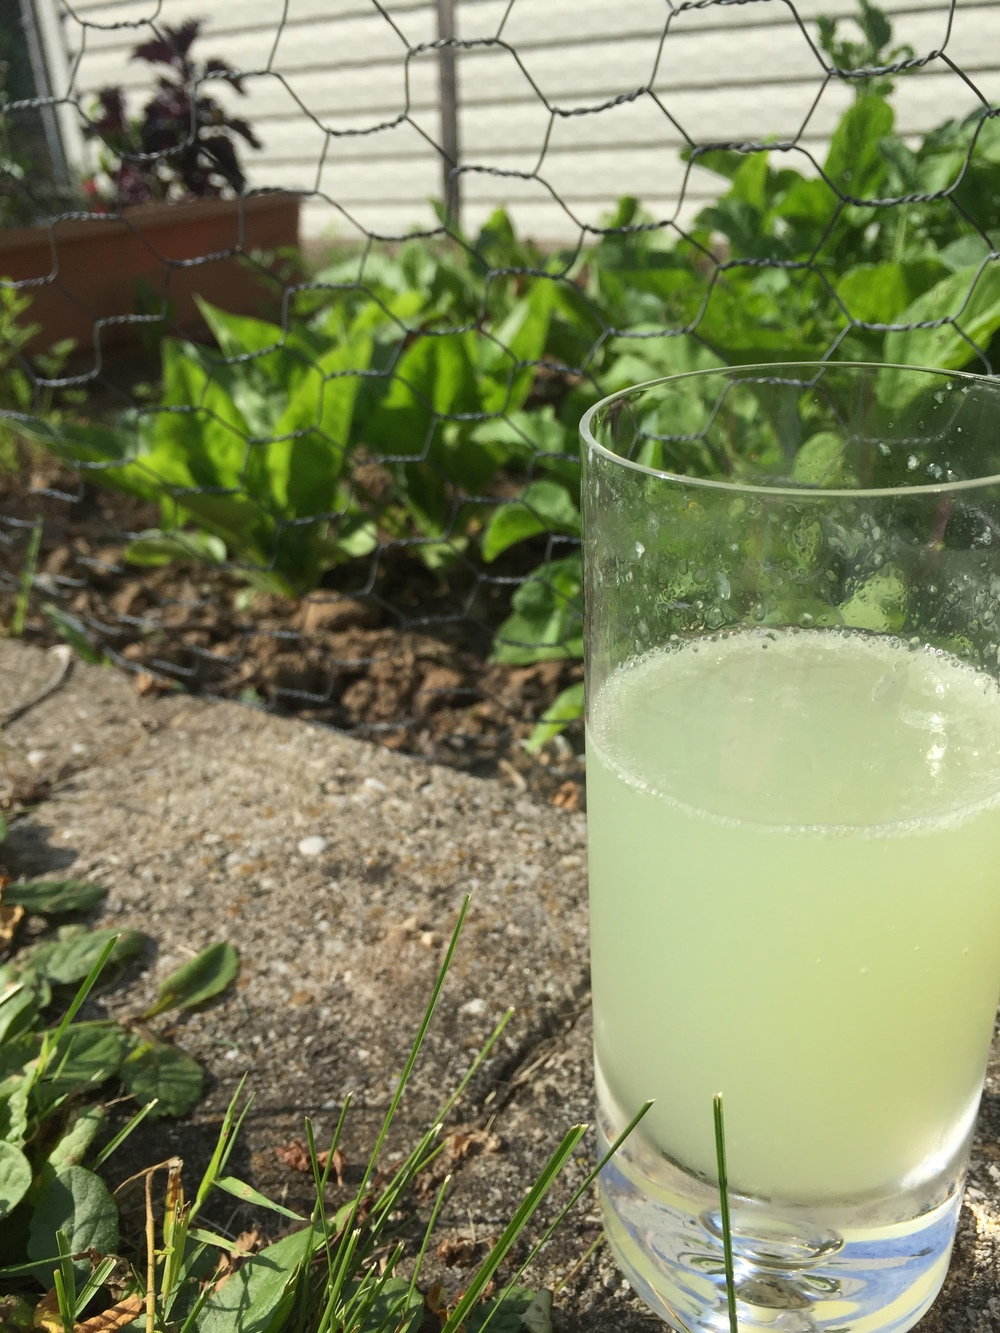 This weekend was so gorgeous, I had to drink this lemonade out by the garden!